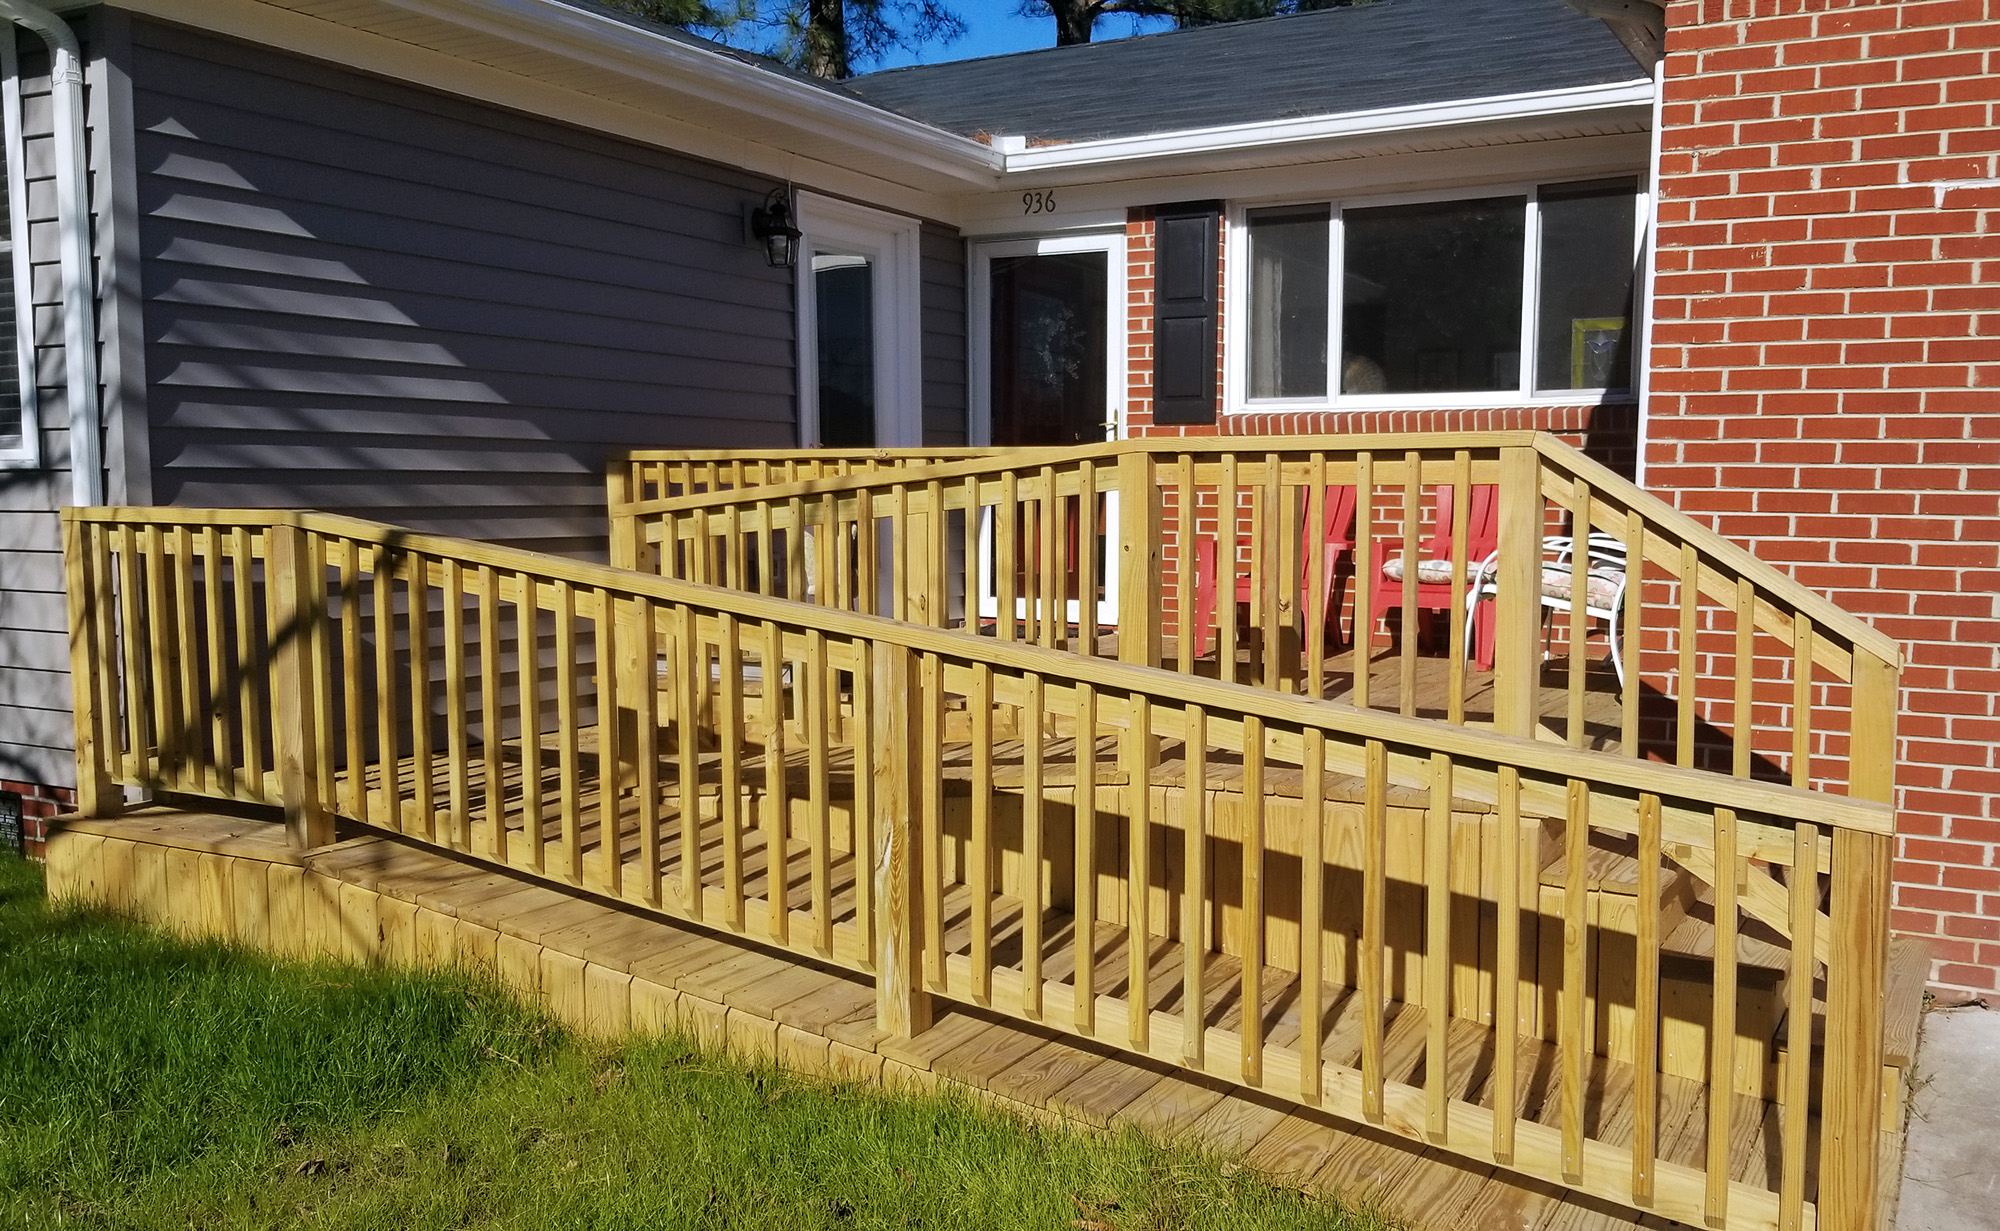 Accessible entryway ramp